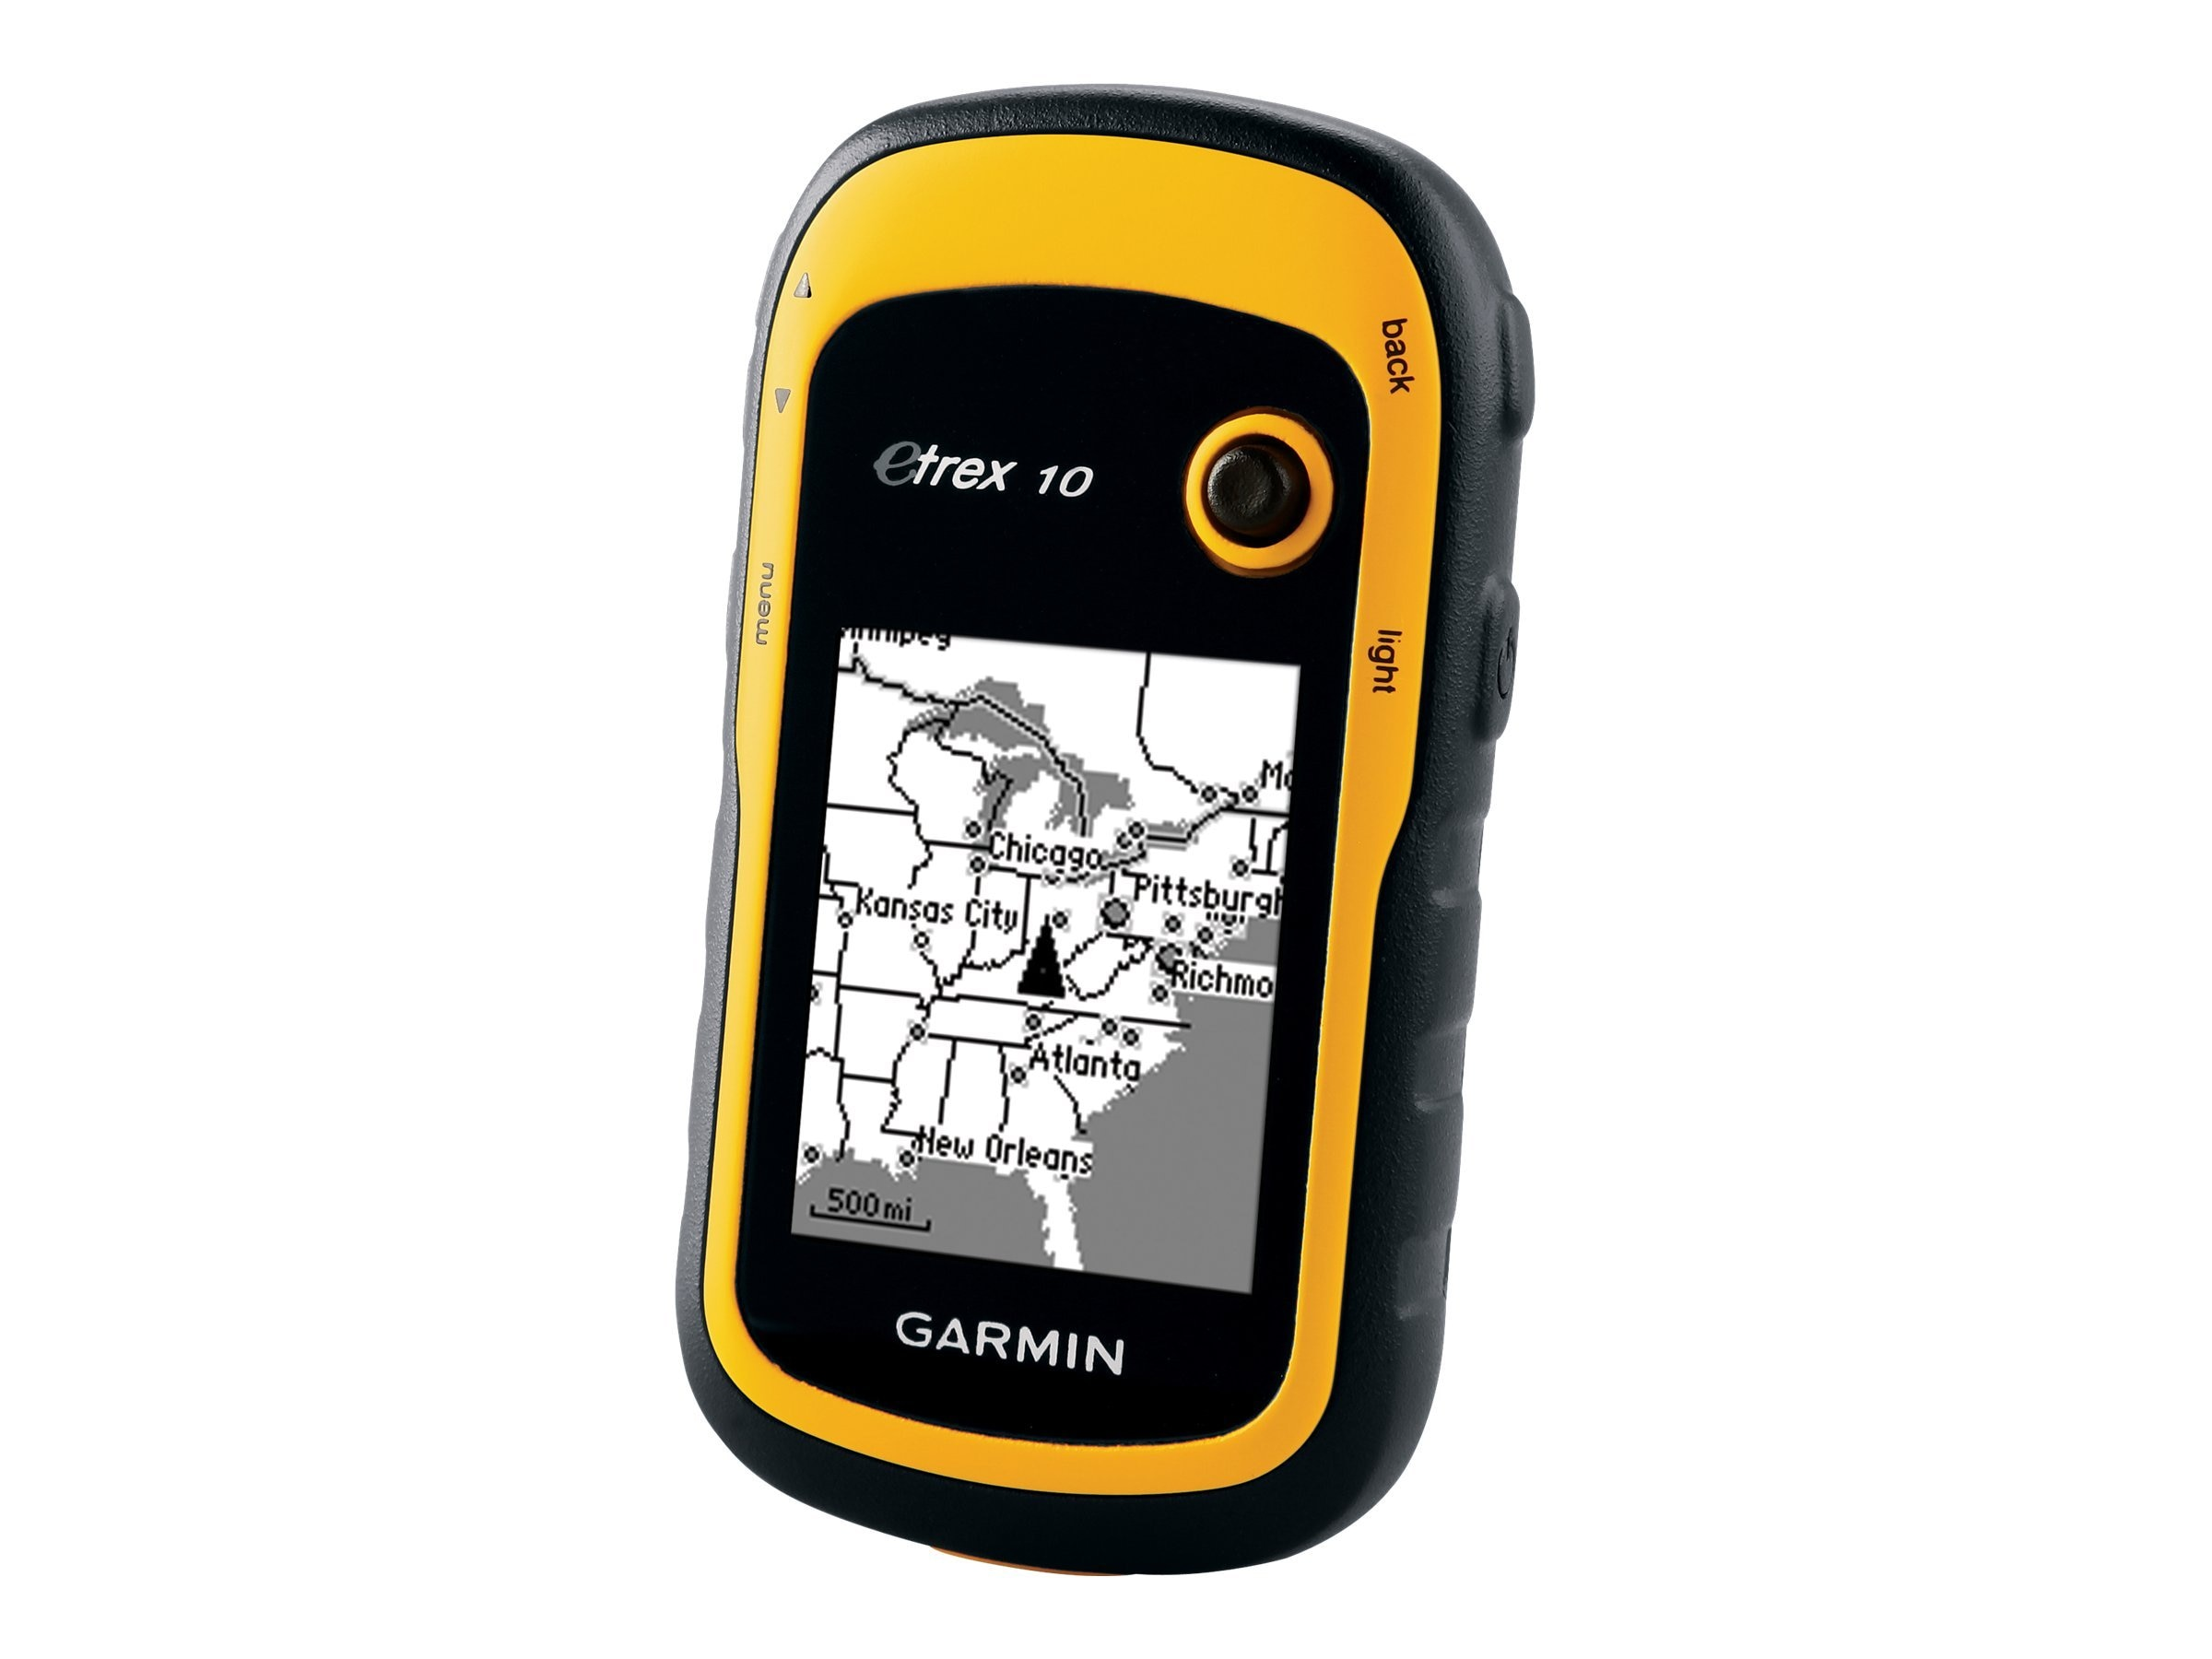 Garmin eTrex 10 GPS Handheld, Yellow